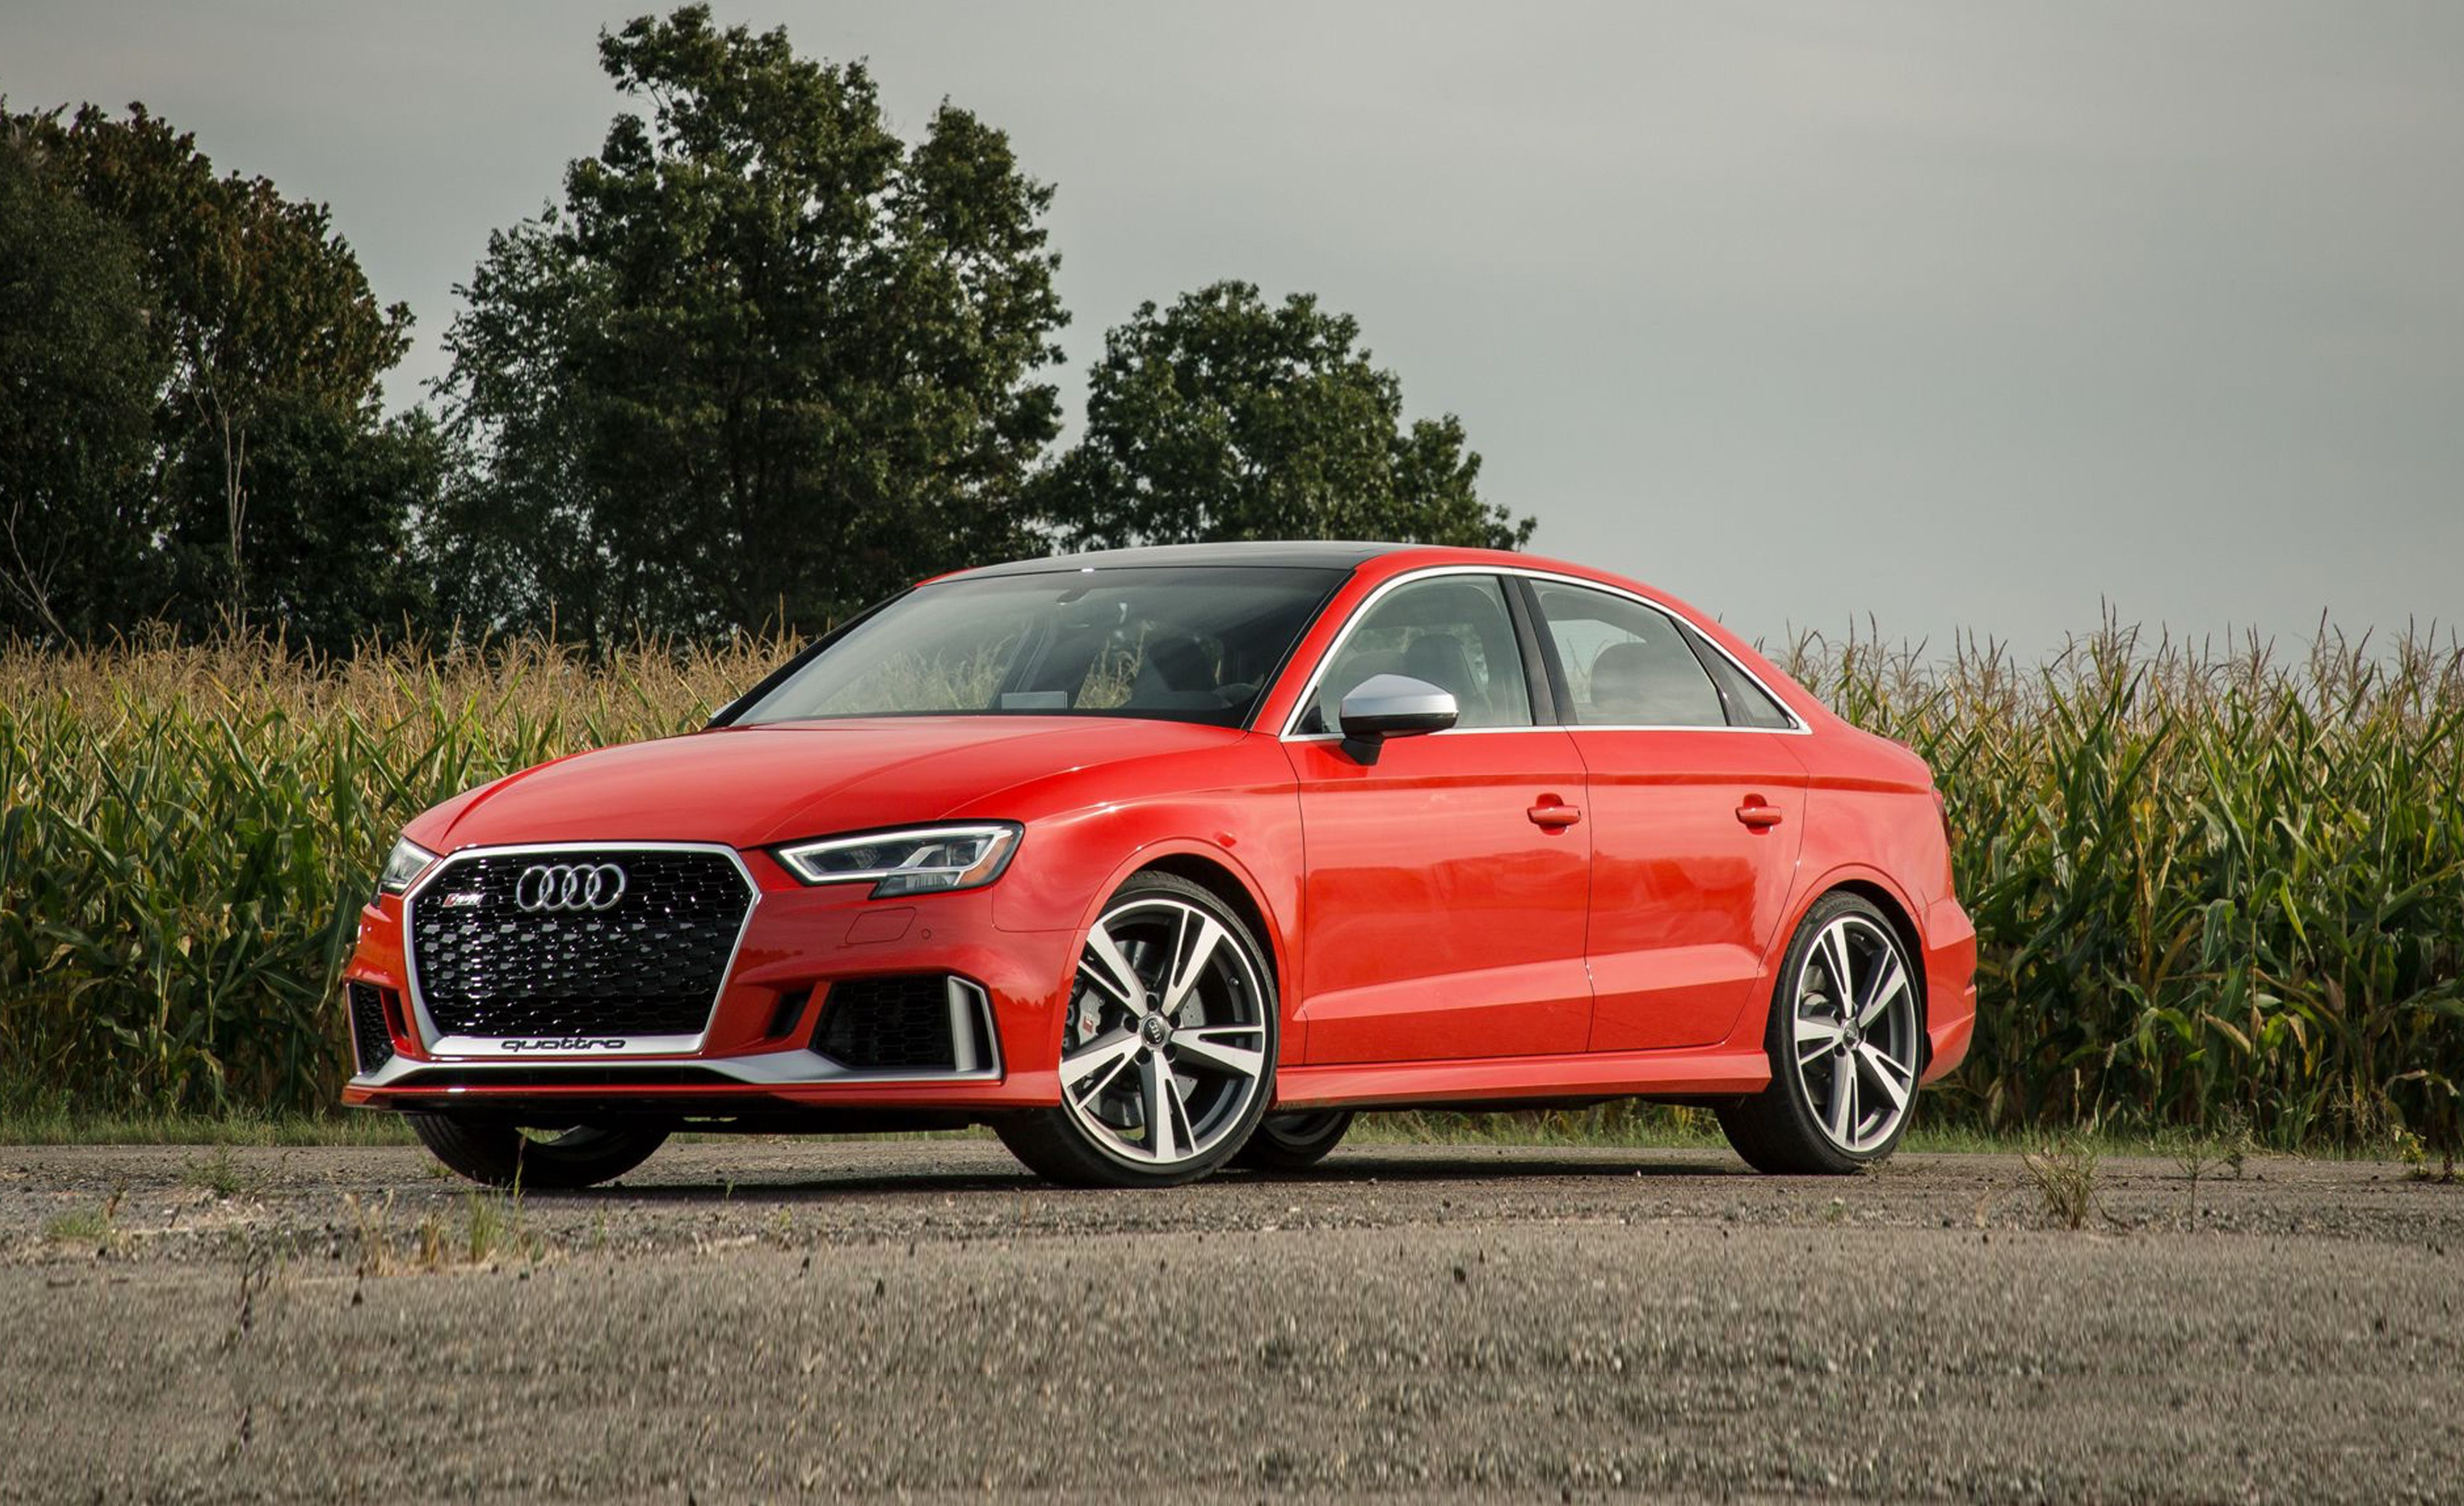 2019 Audi Rs3 Reviews Audi Rs3 Price Photos And Specs Car And